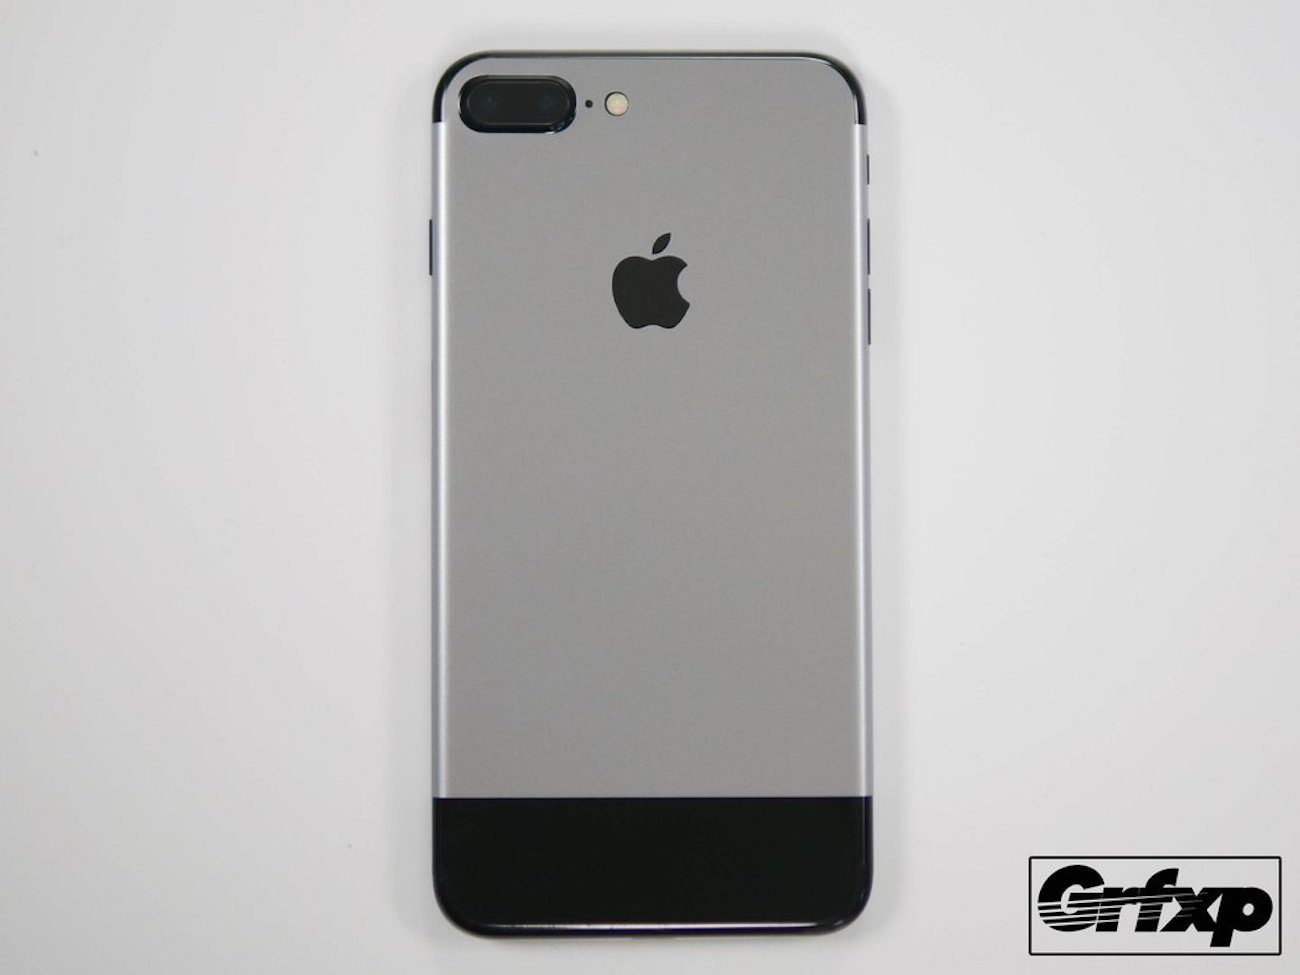 dating apps free iphone 7 without computer